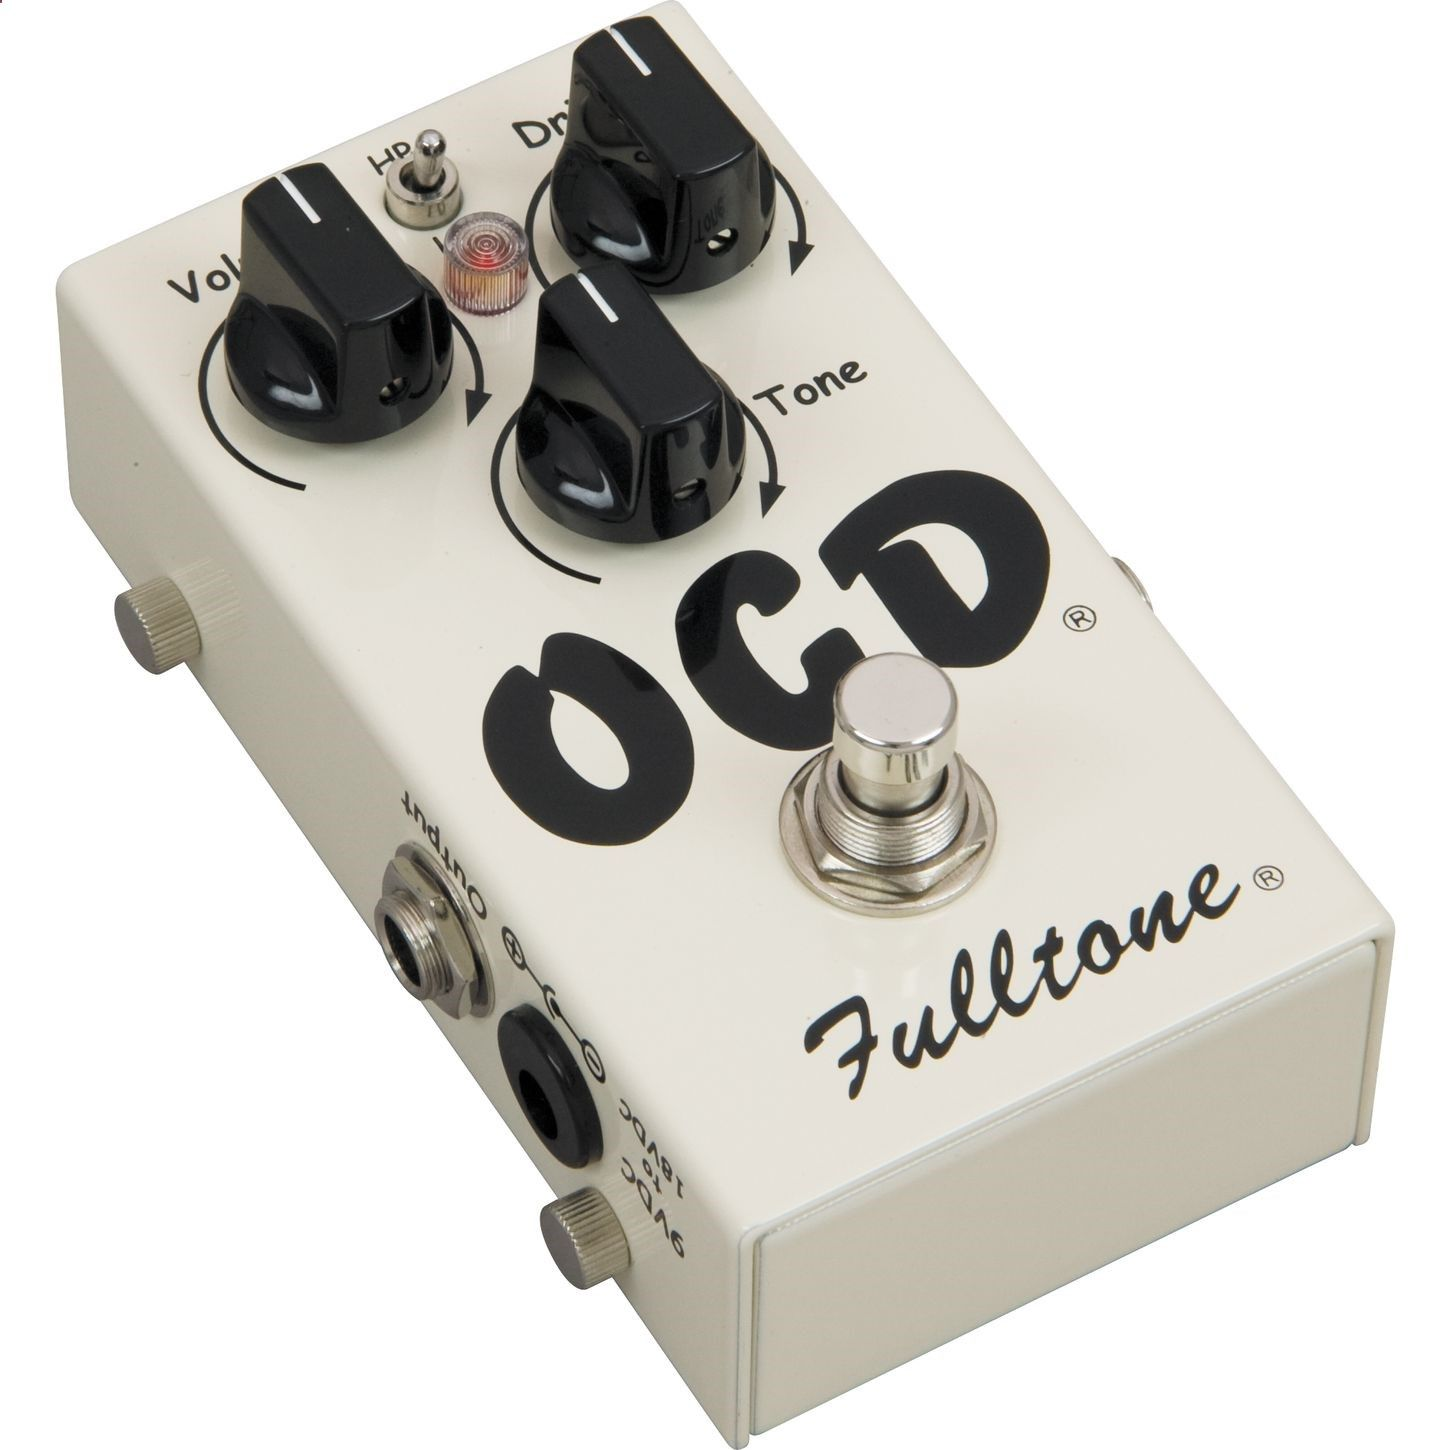 Guitar Pedals - This is my distortion pedal. Its clarity is great regardles of volume, and isnt muddy when the amp is at 11. Fulltone OCD Obsessive Compulsive Drive Overdrive Guitar Effects Pedal